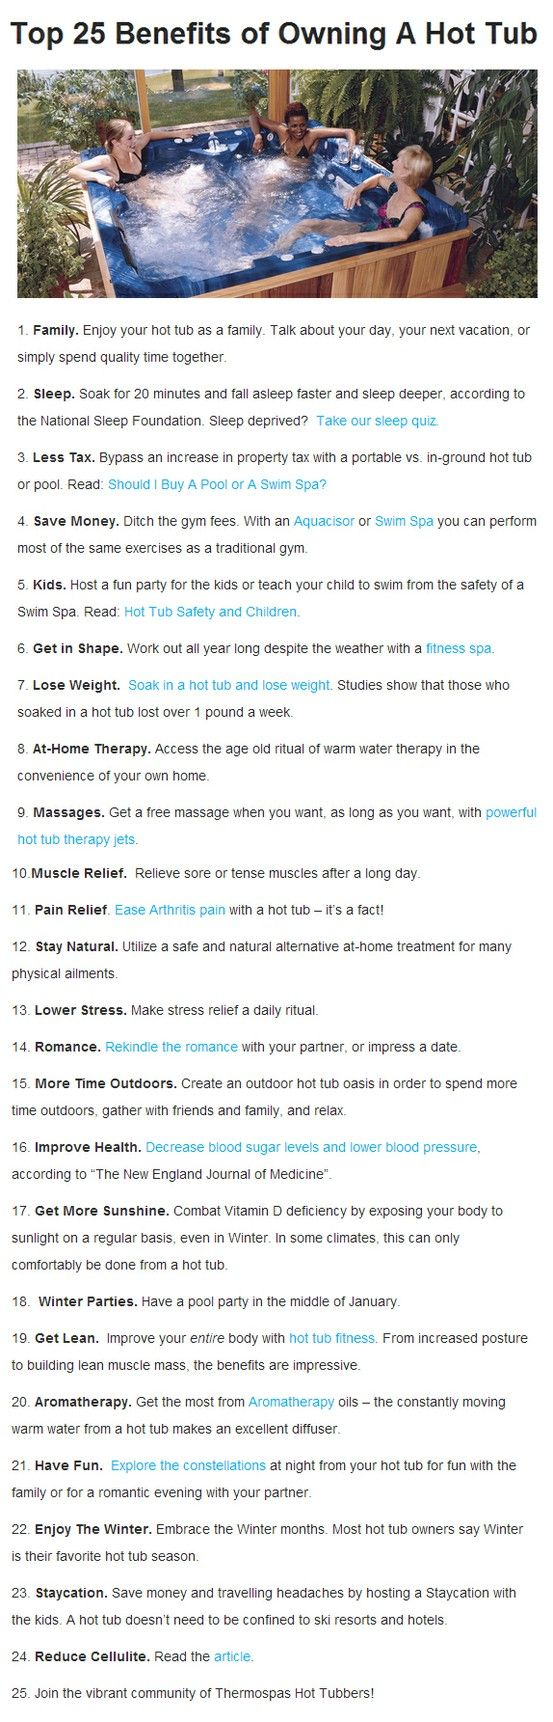 The Top 25 Benefits of Owning A Hot Tub - by Thermospas. We definitely have enjoyed a lot of these reasons!